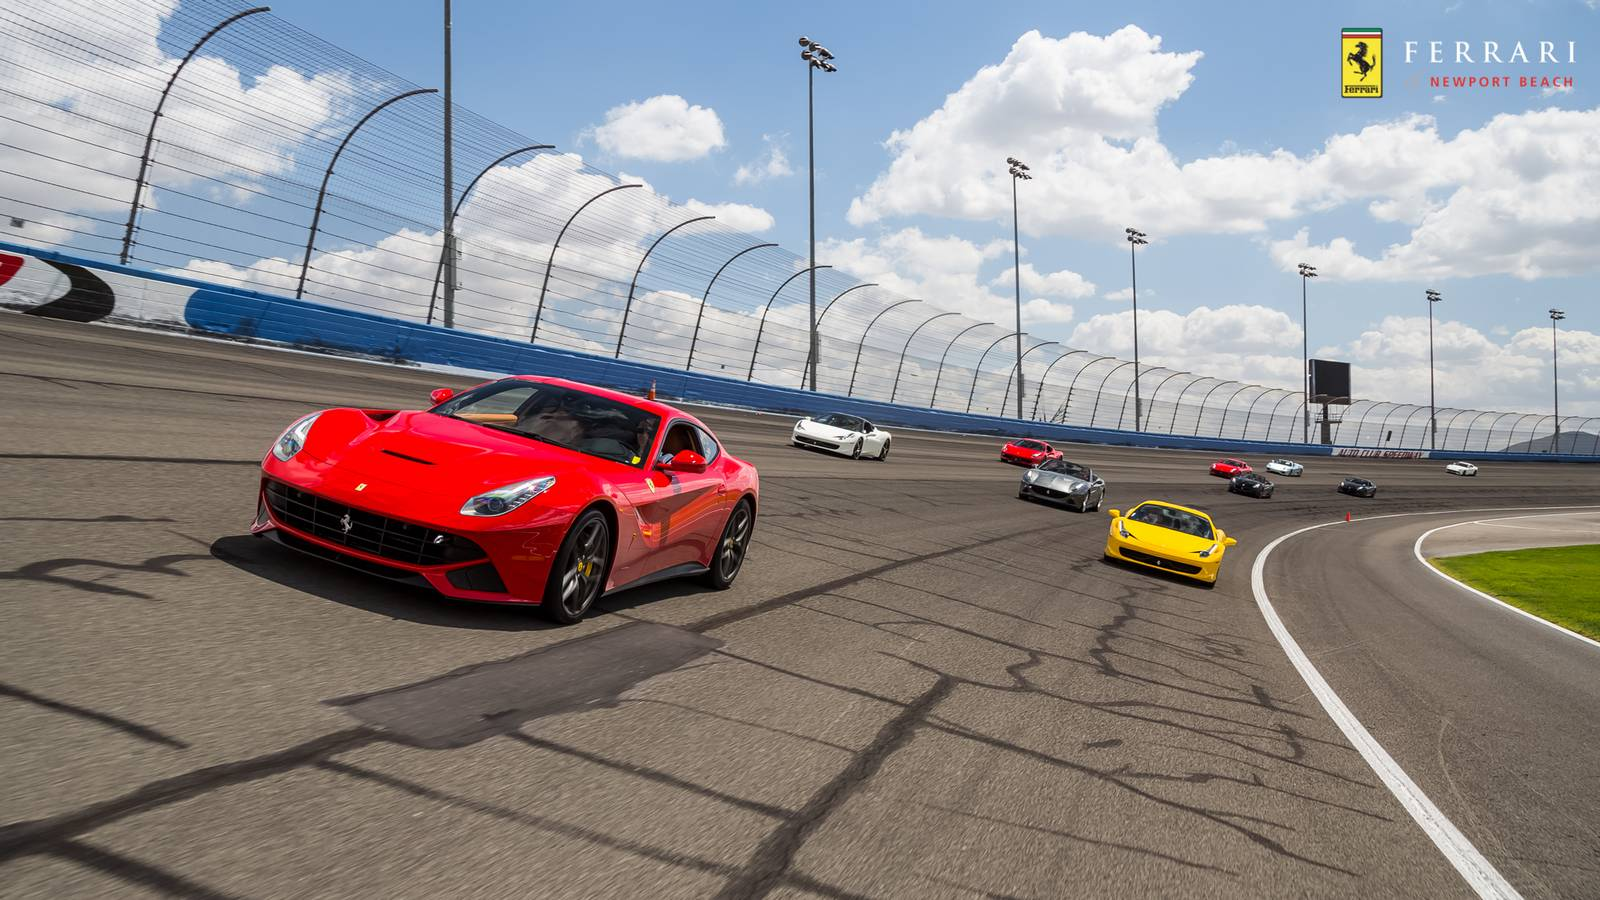 gallery ferrari of newport beach track day gtspirit. Cars Review. Best American Auto & Cars Review